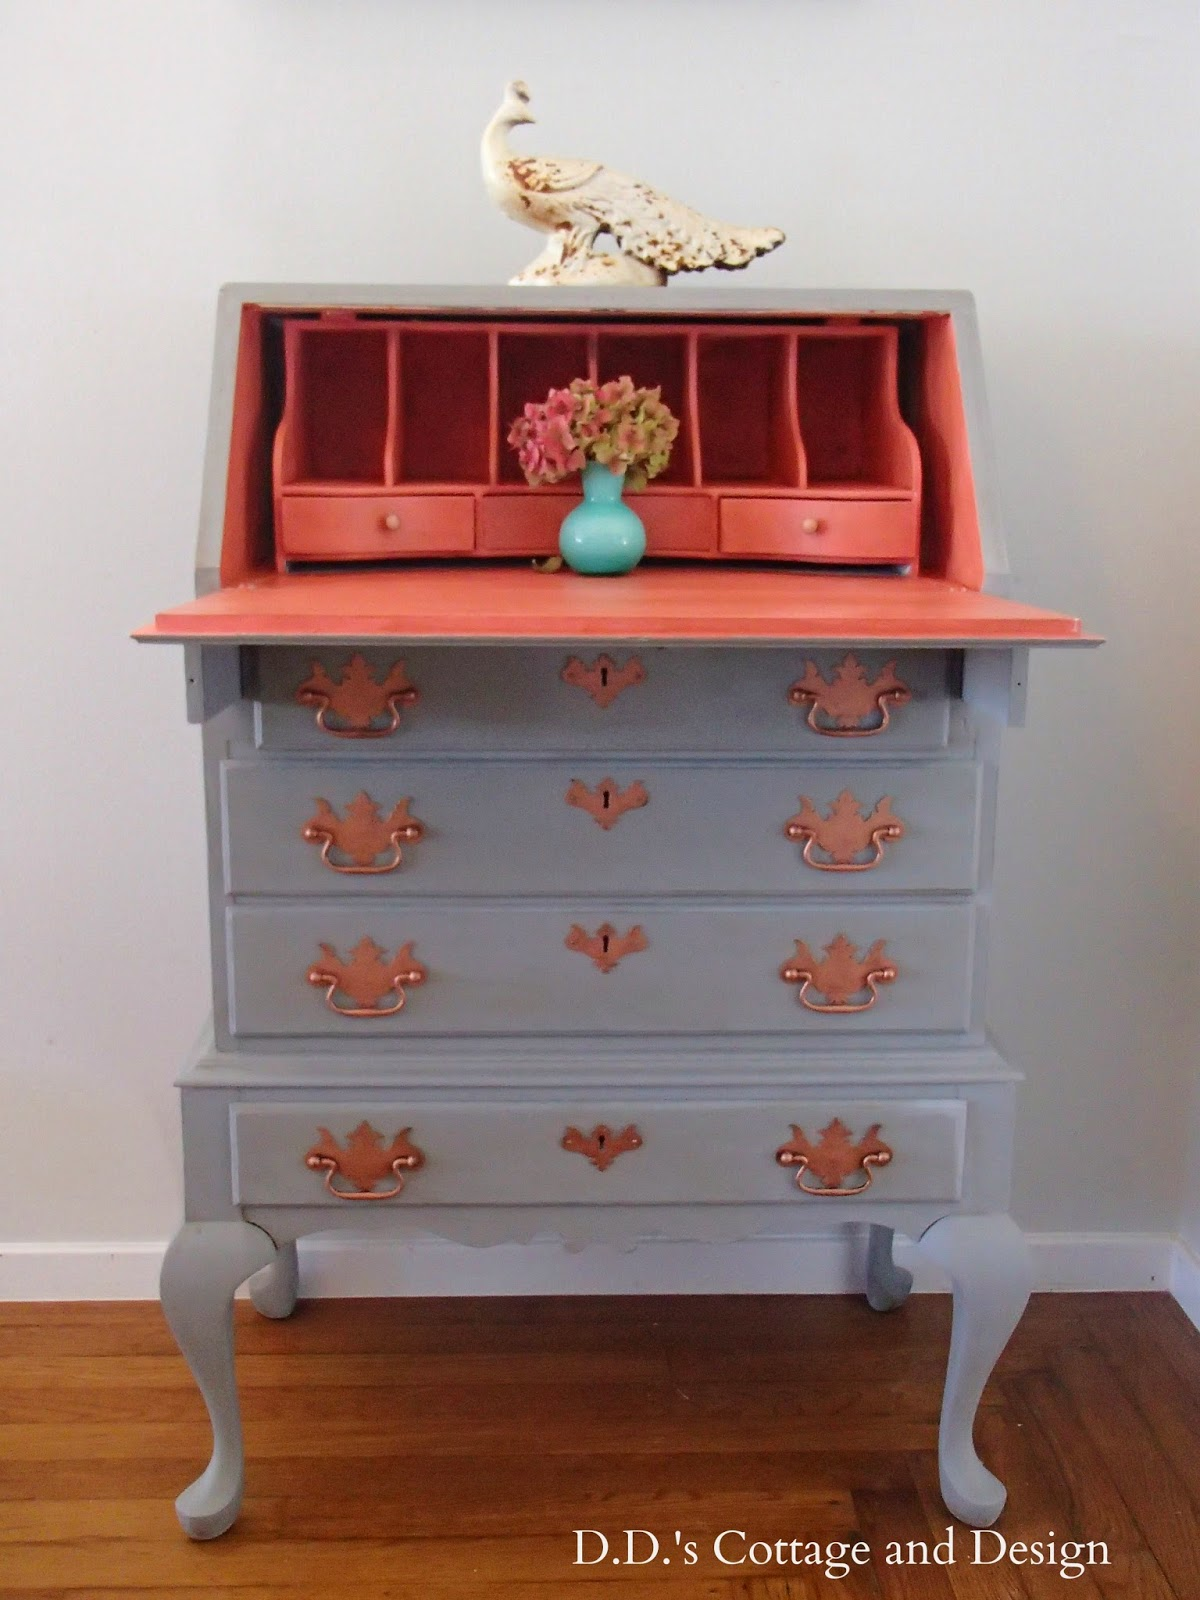 http://ddscottage.blogspot.com/2014/07/queen-anne-secretary-desk-with-pop-of.html